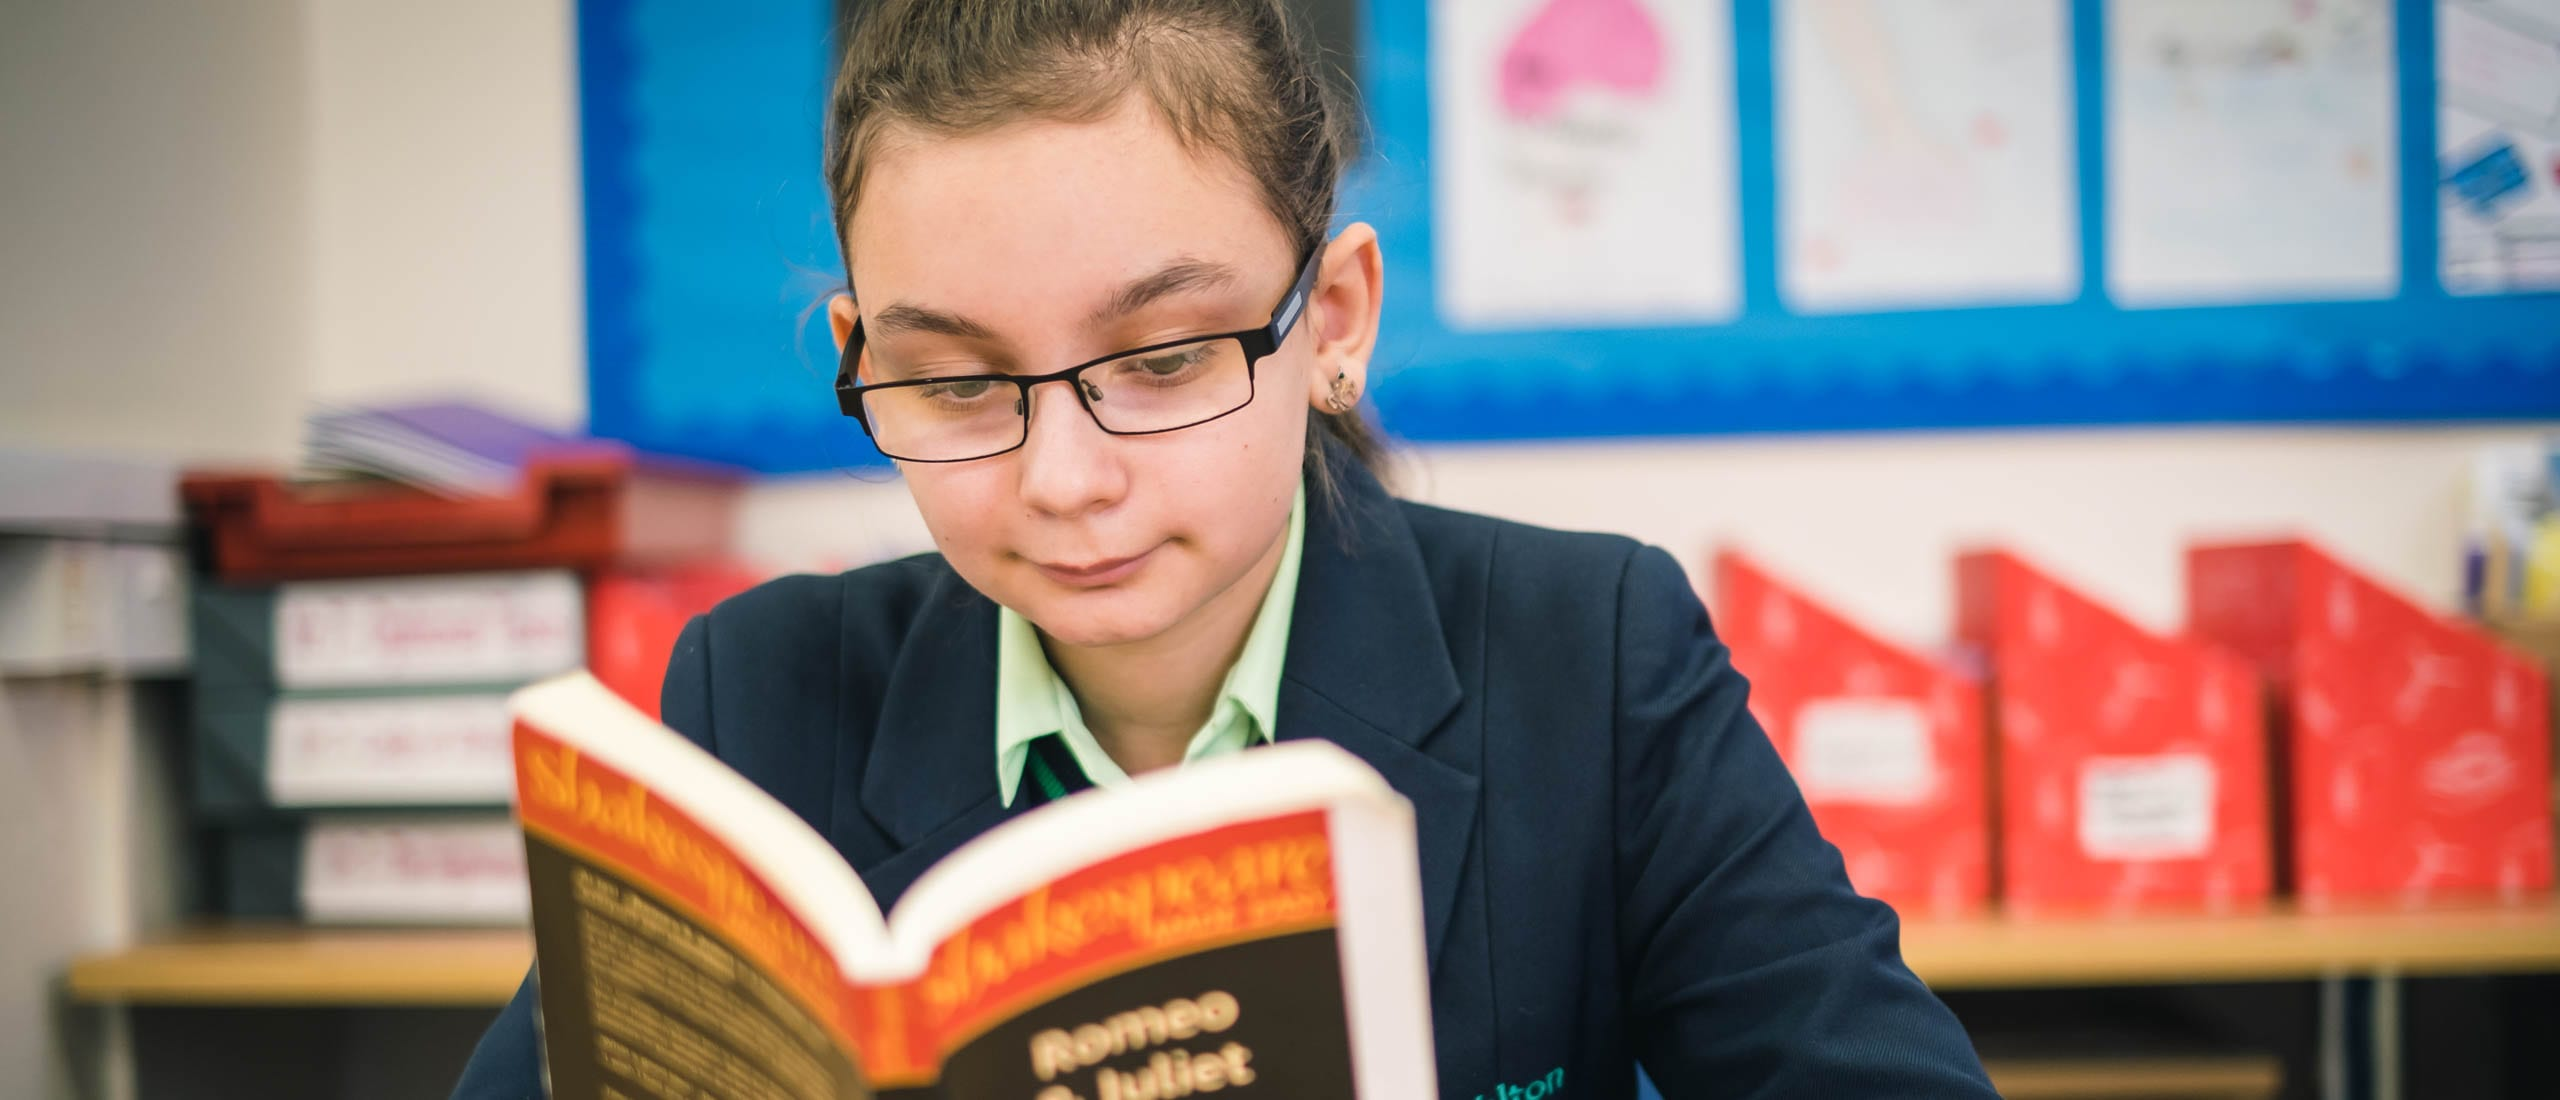 Supporting your child with reading